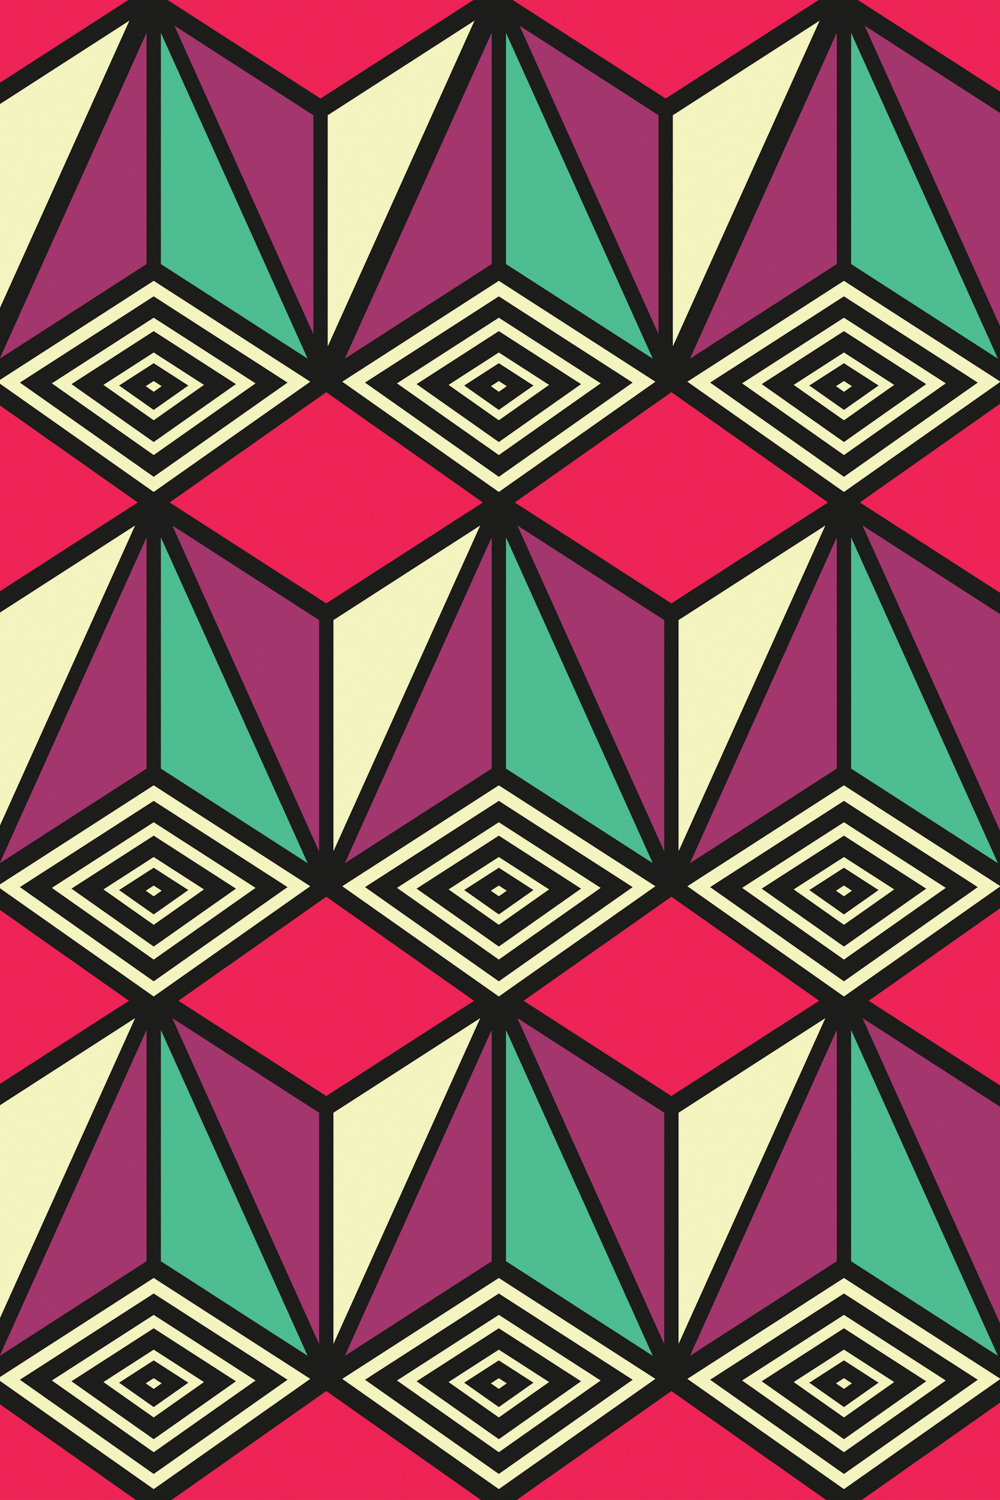 a geometric symmetrical pattern featuring purple, green, pink, yellow and black